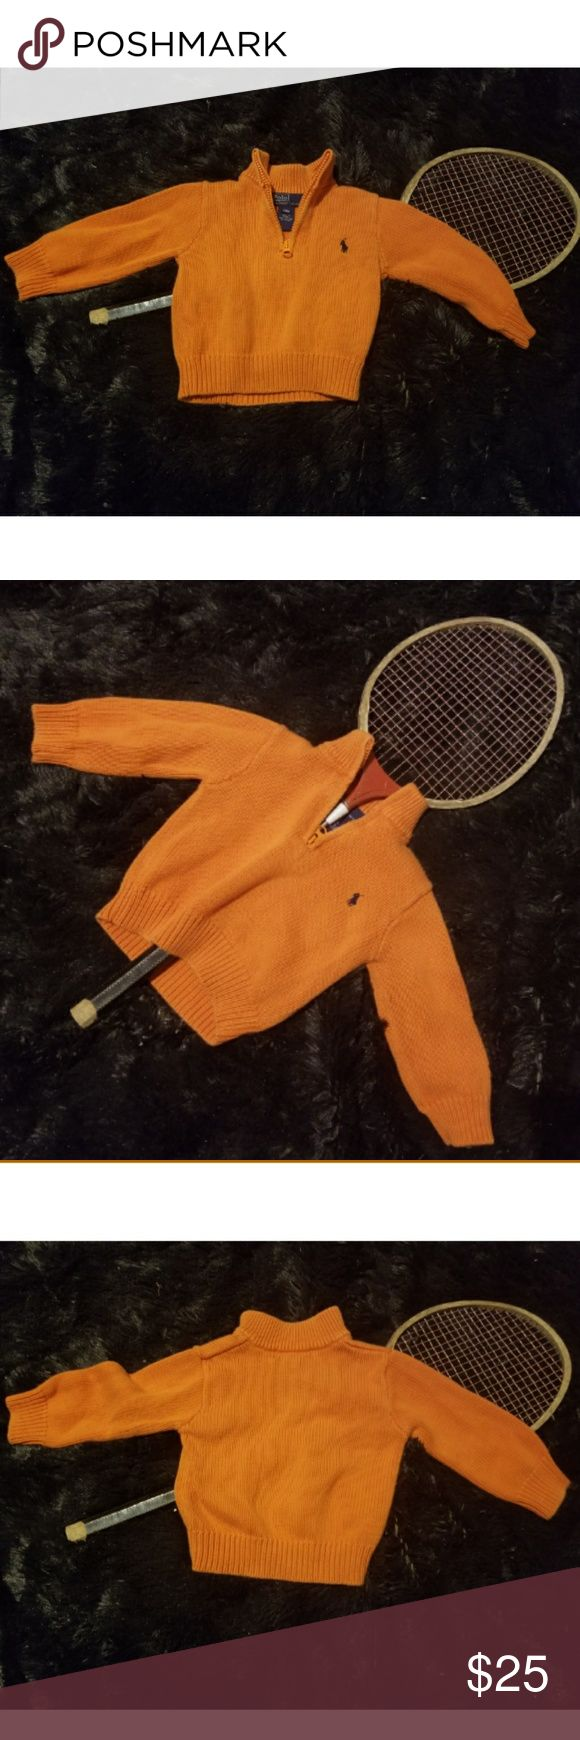 🎉Polo Infant Boys Orange Zip Up Cotton Jacket🎉 Perfect for fall! Orange Polo zip up jacket for the little man in your life. Size 18M. Super comfortable. 100% Cotton. In great condition. Polo by Ralph Lauren Jackets & Coats